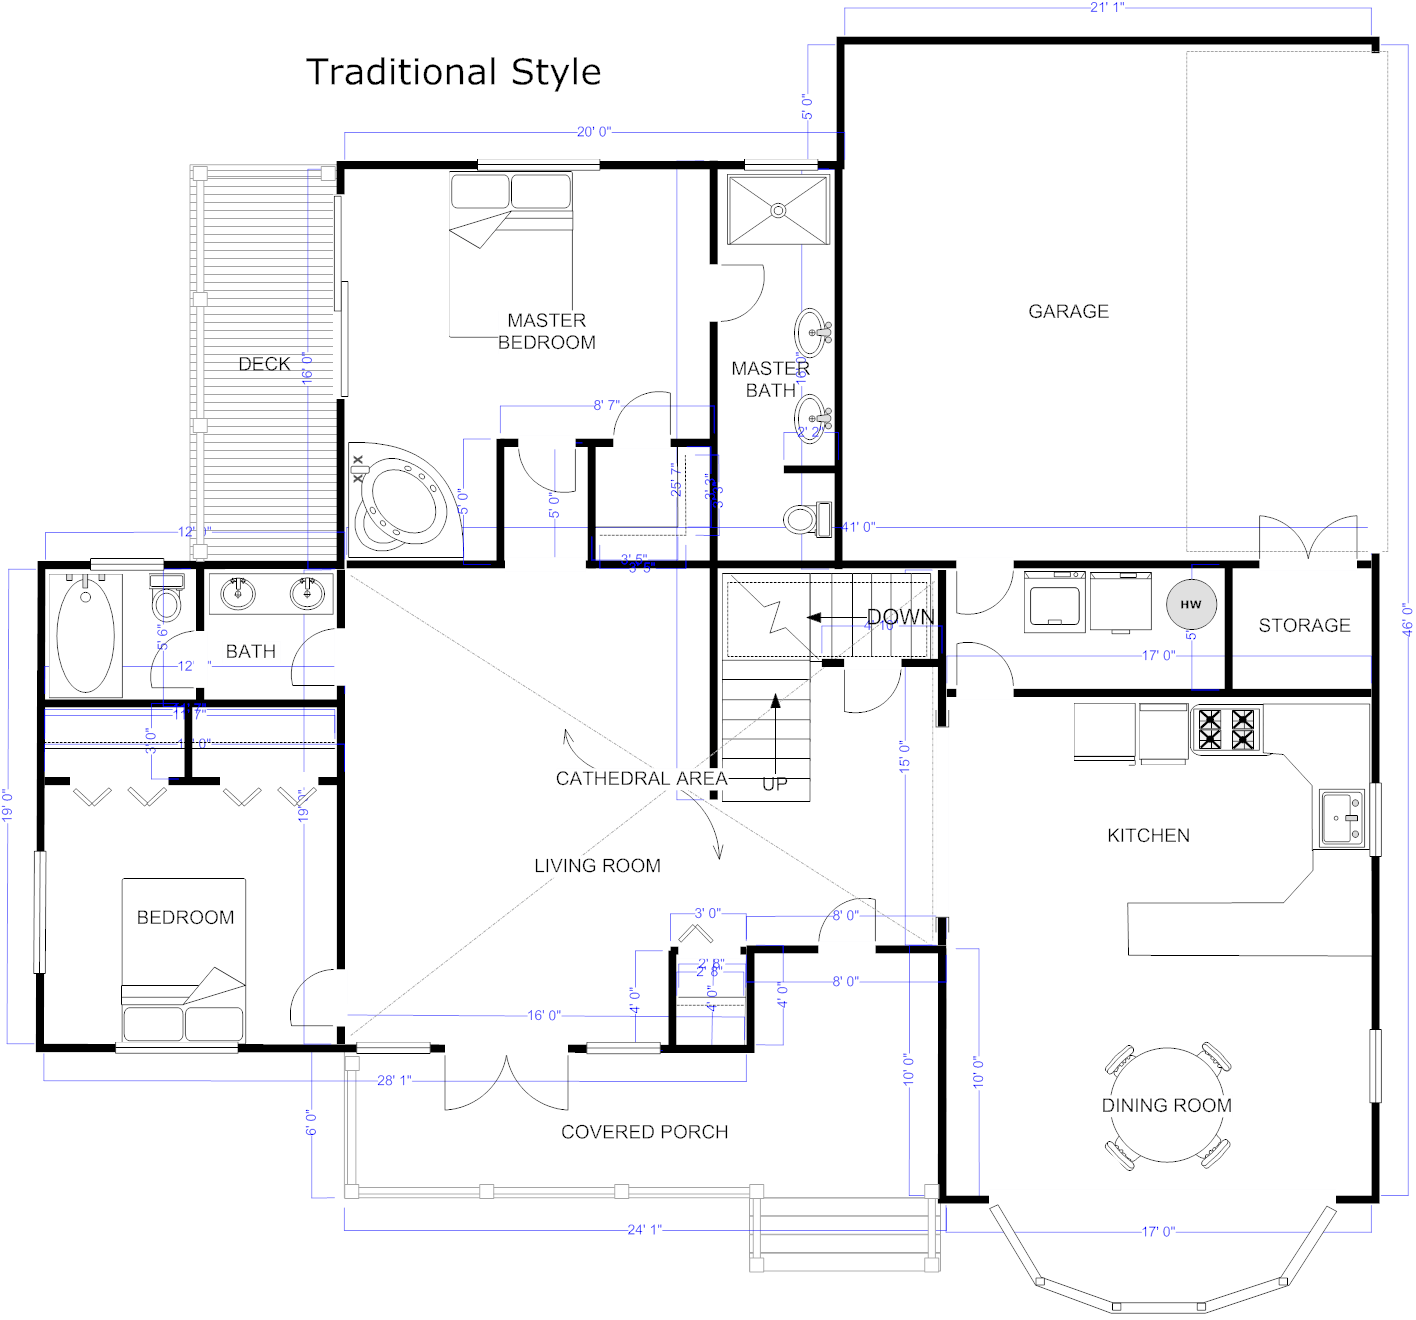 Floor Plan Maker - Draw Floor Plans